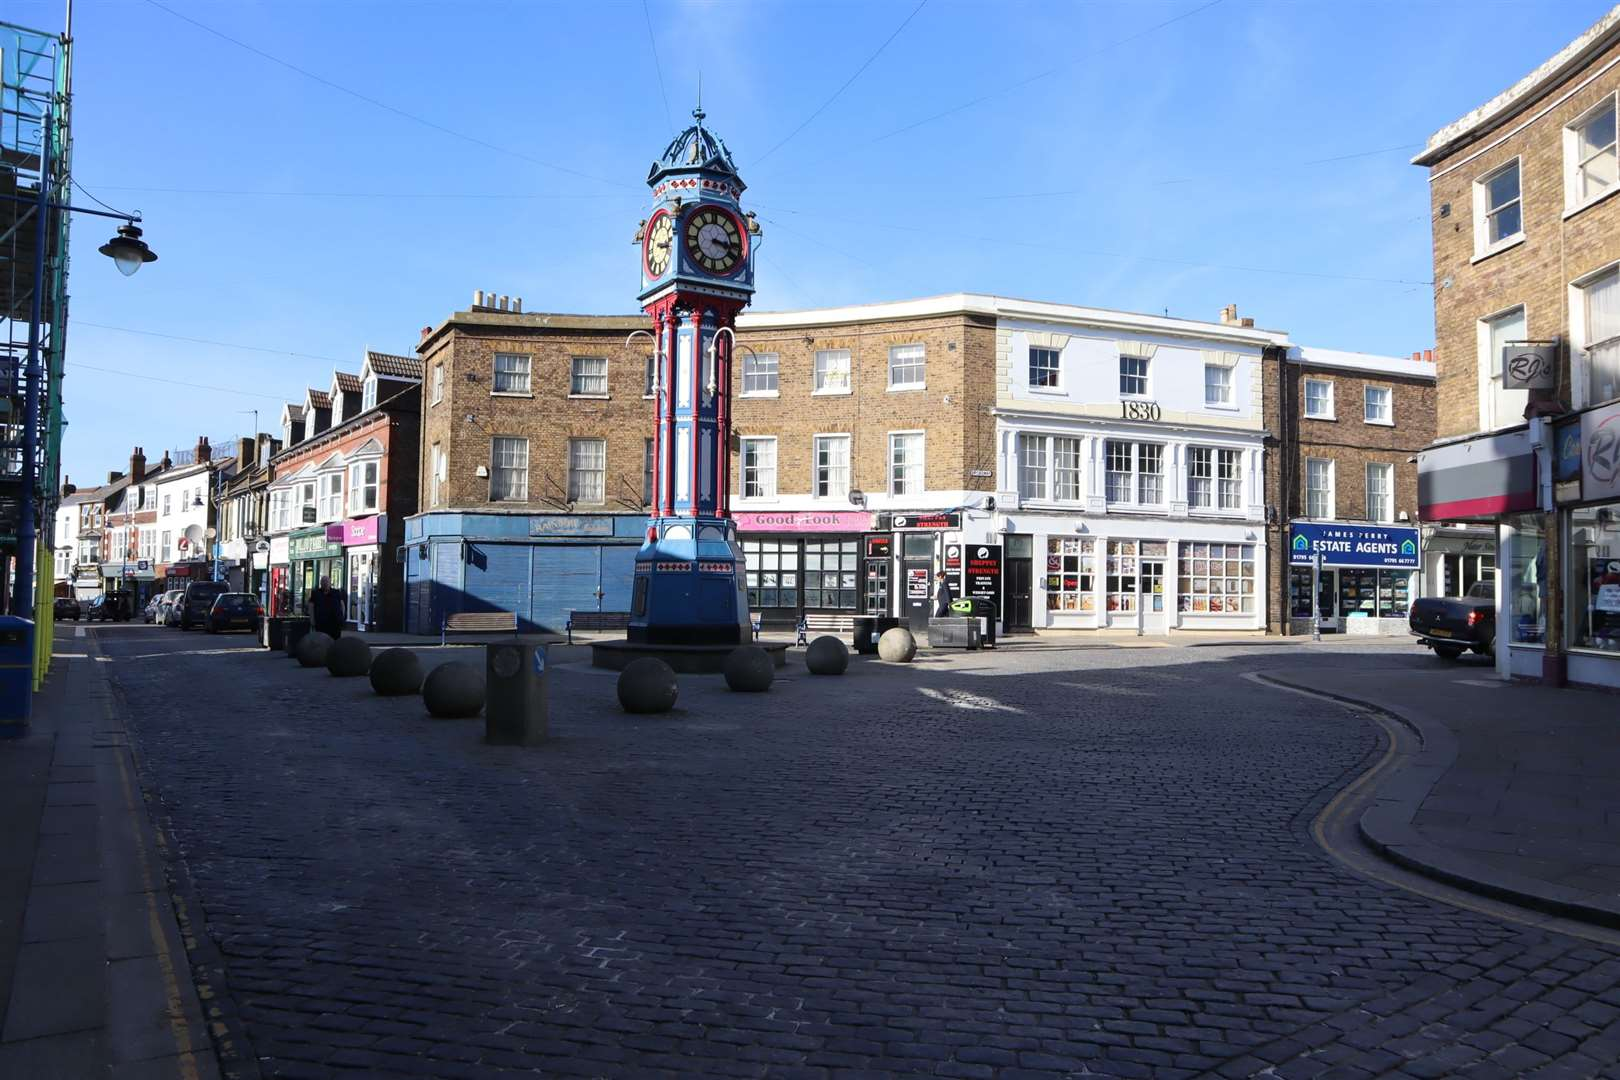 Sheerness town centre looking like a ghost town as a result of the coronavirus scare